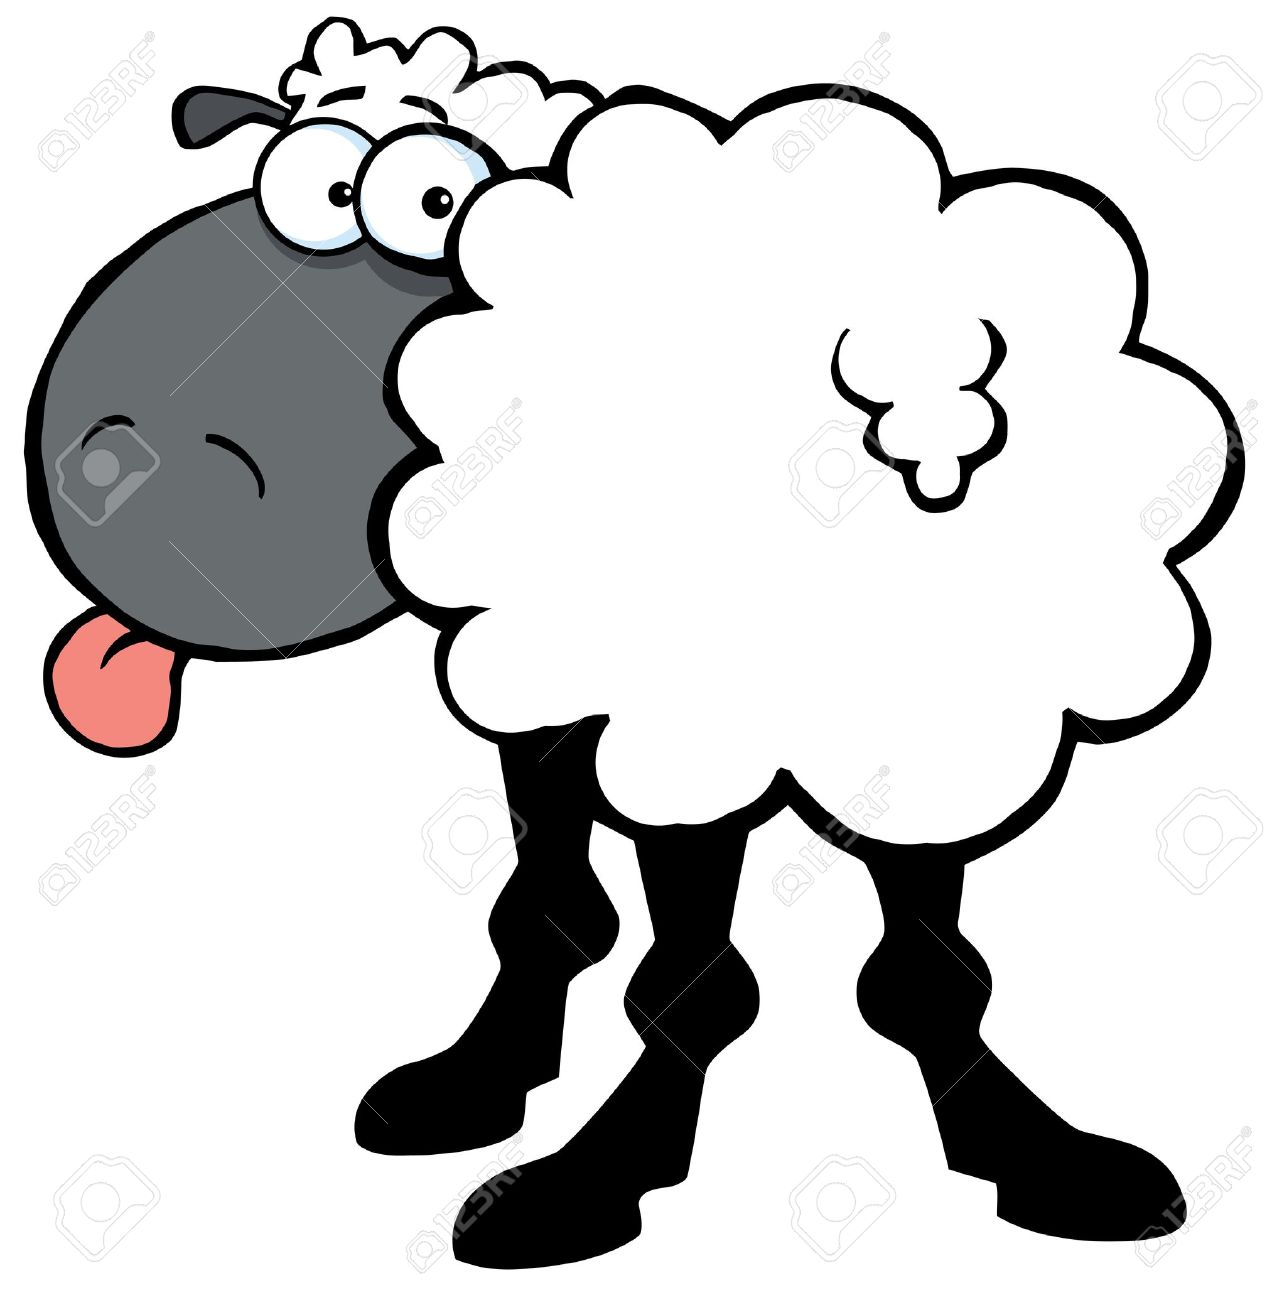 Funky Black Sheep Sticking Out His Tongue Royalty Free Cliparts.